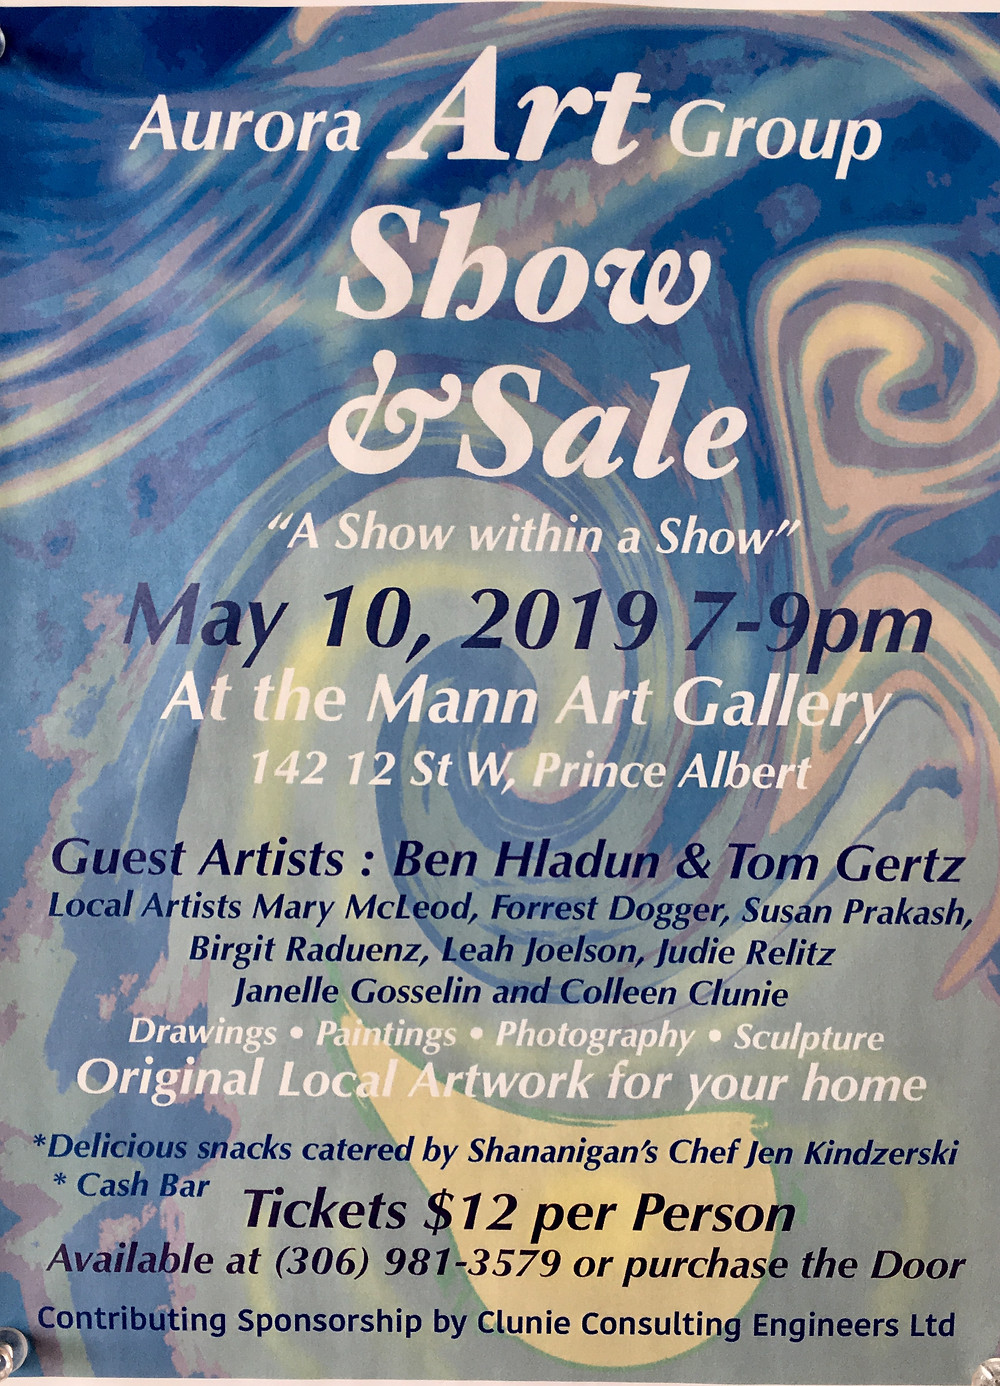 Poster for Aurora Art Group show & sale at mann art gallery on may 10 from 7 - 9 pm